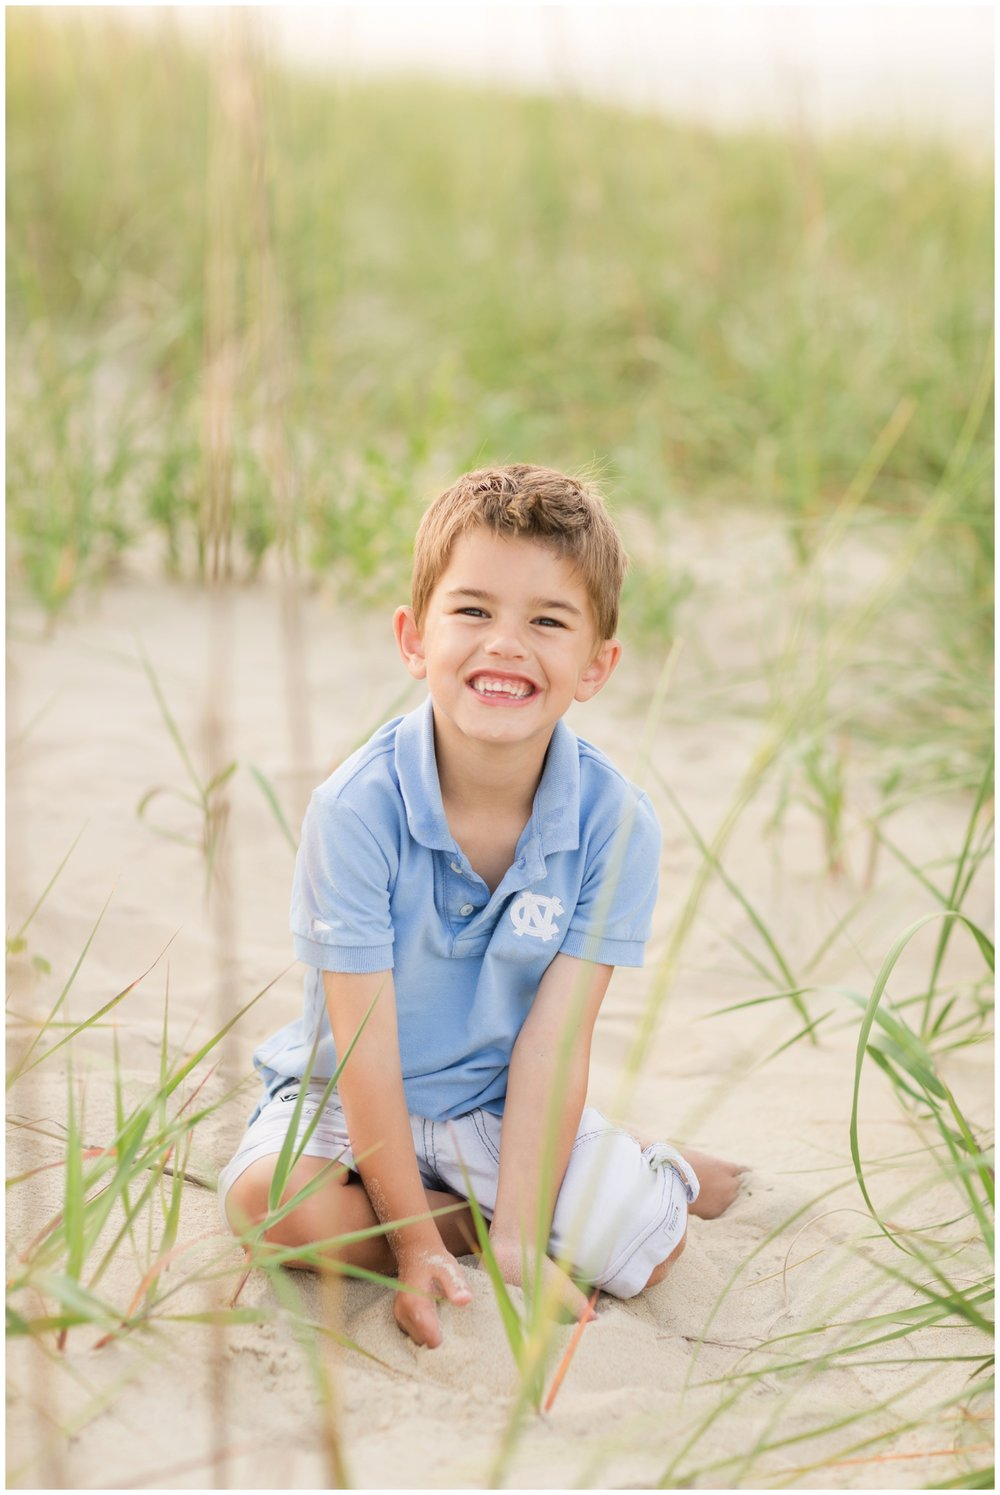 elovephotos virginia beach sandbridge family photographer_0887.jpg